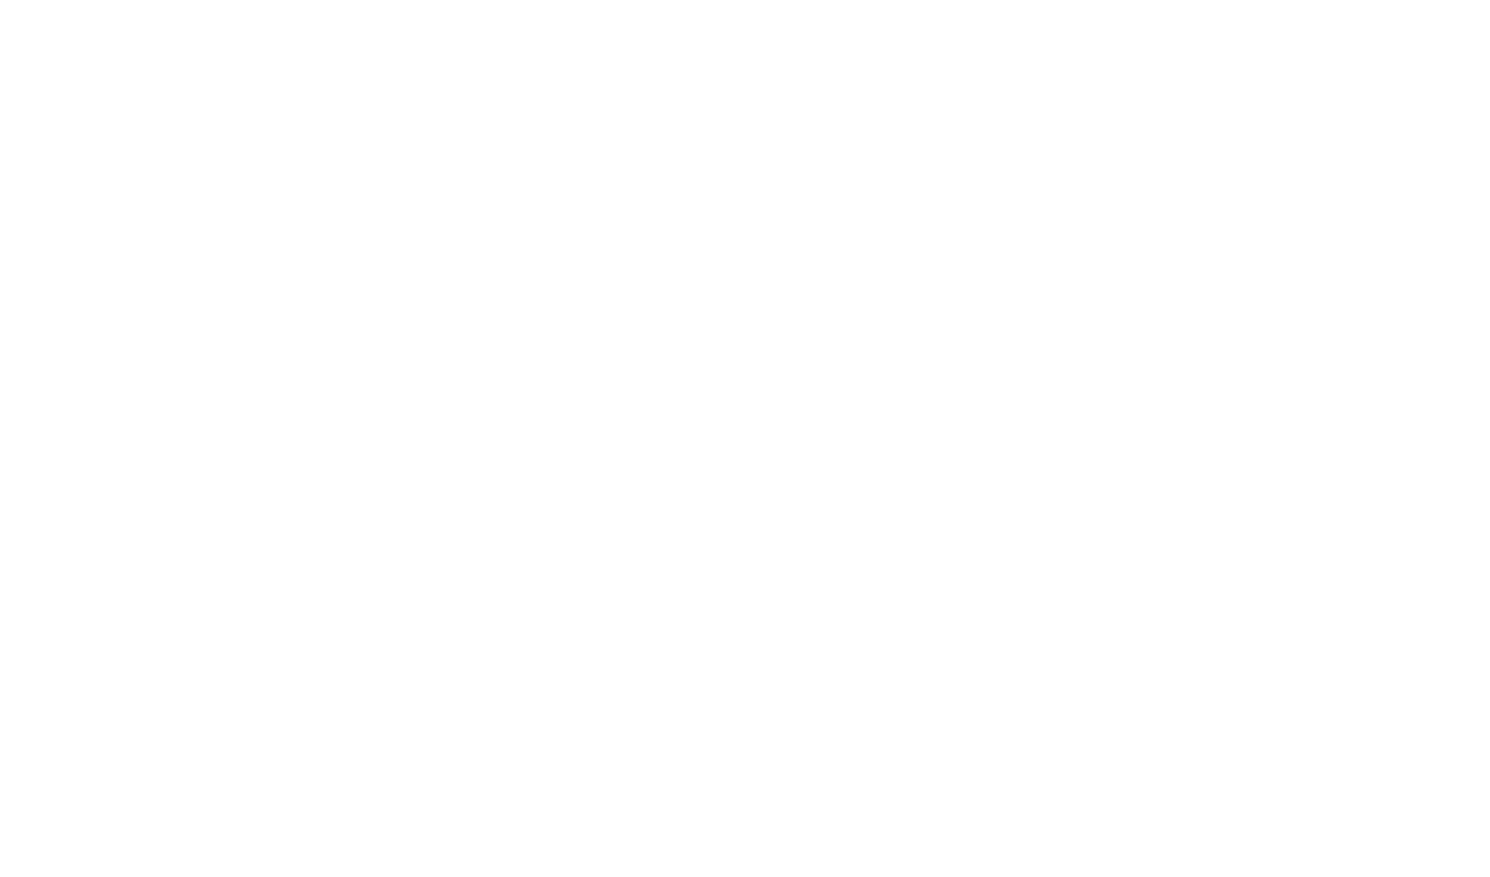 big image of a map